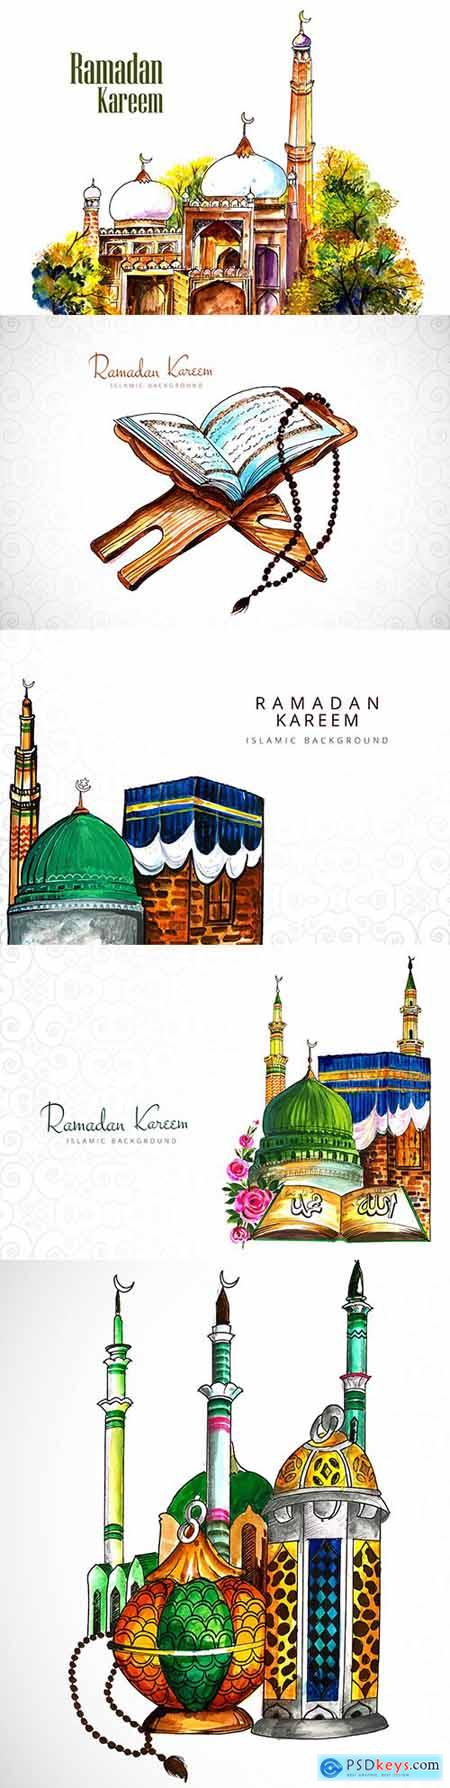 Ramadan Kareem illustration design with mosque